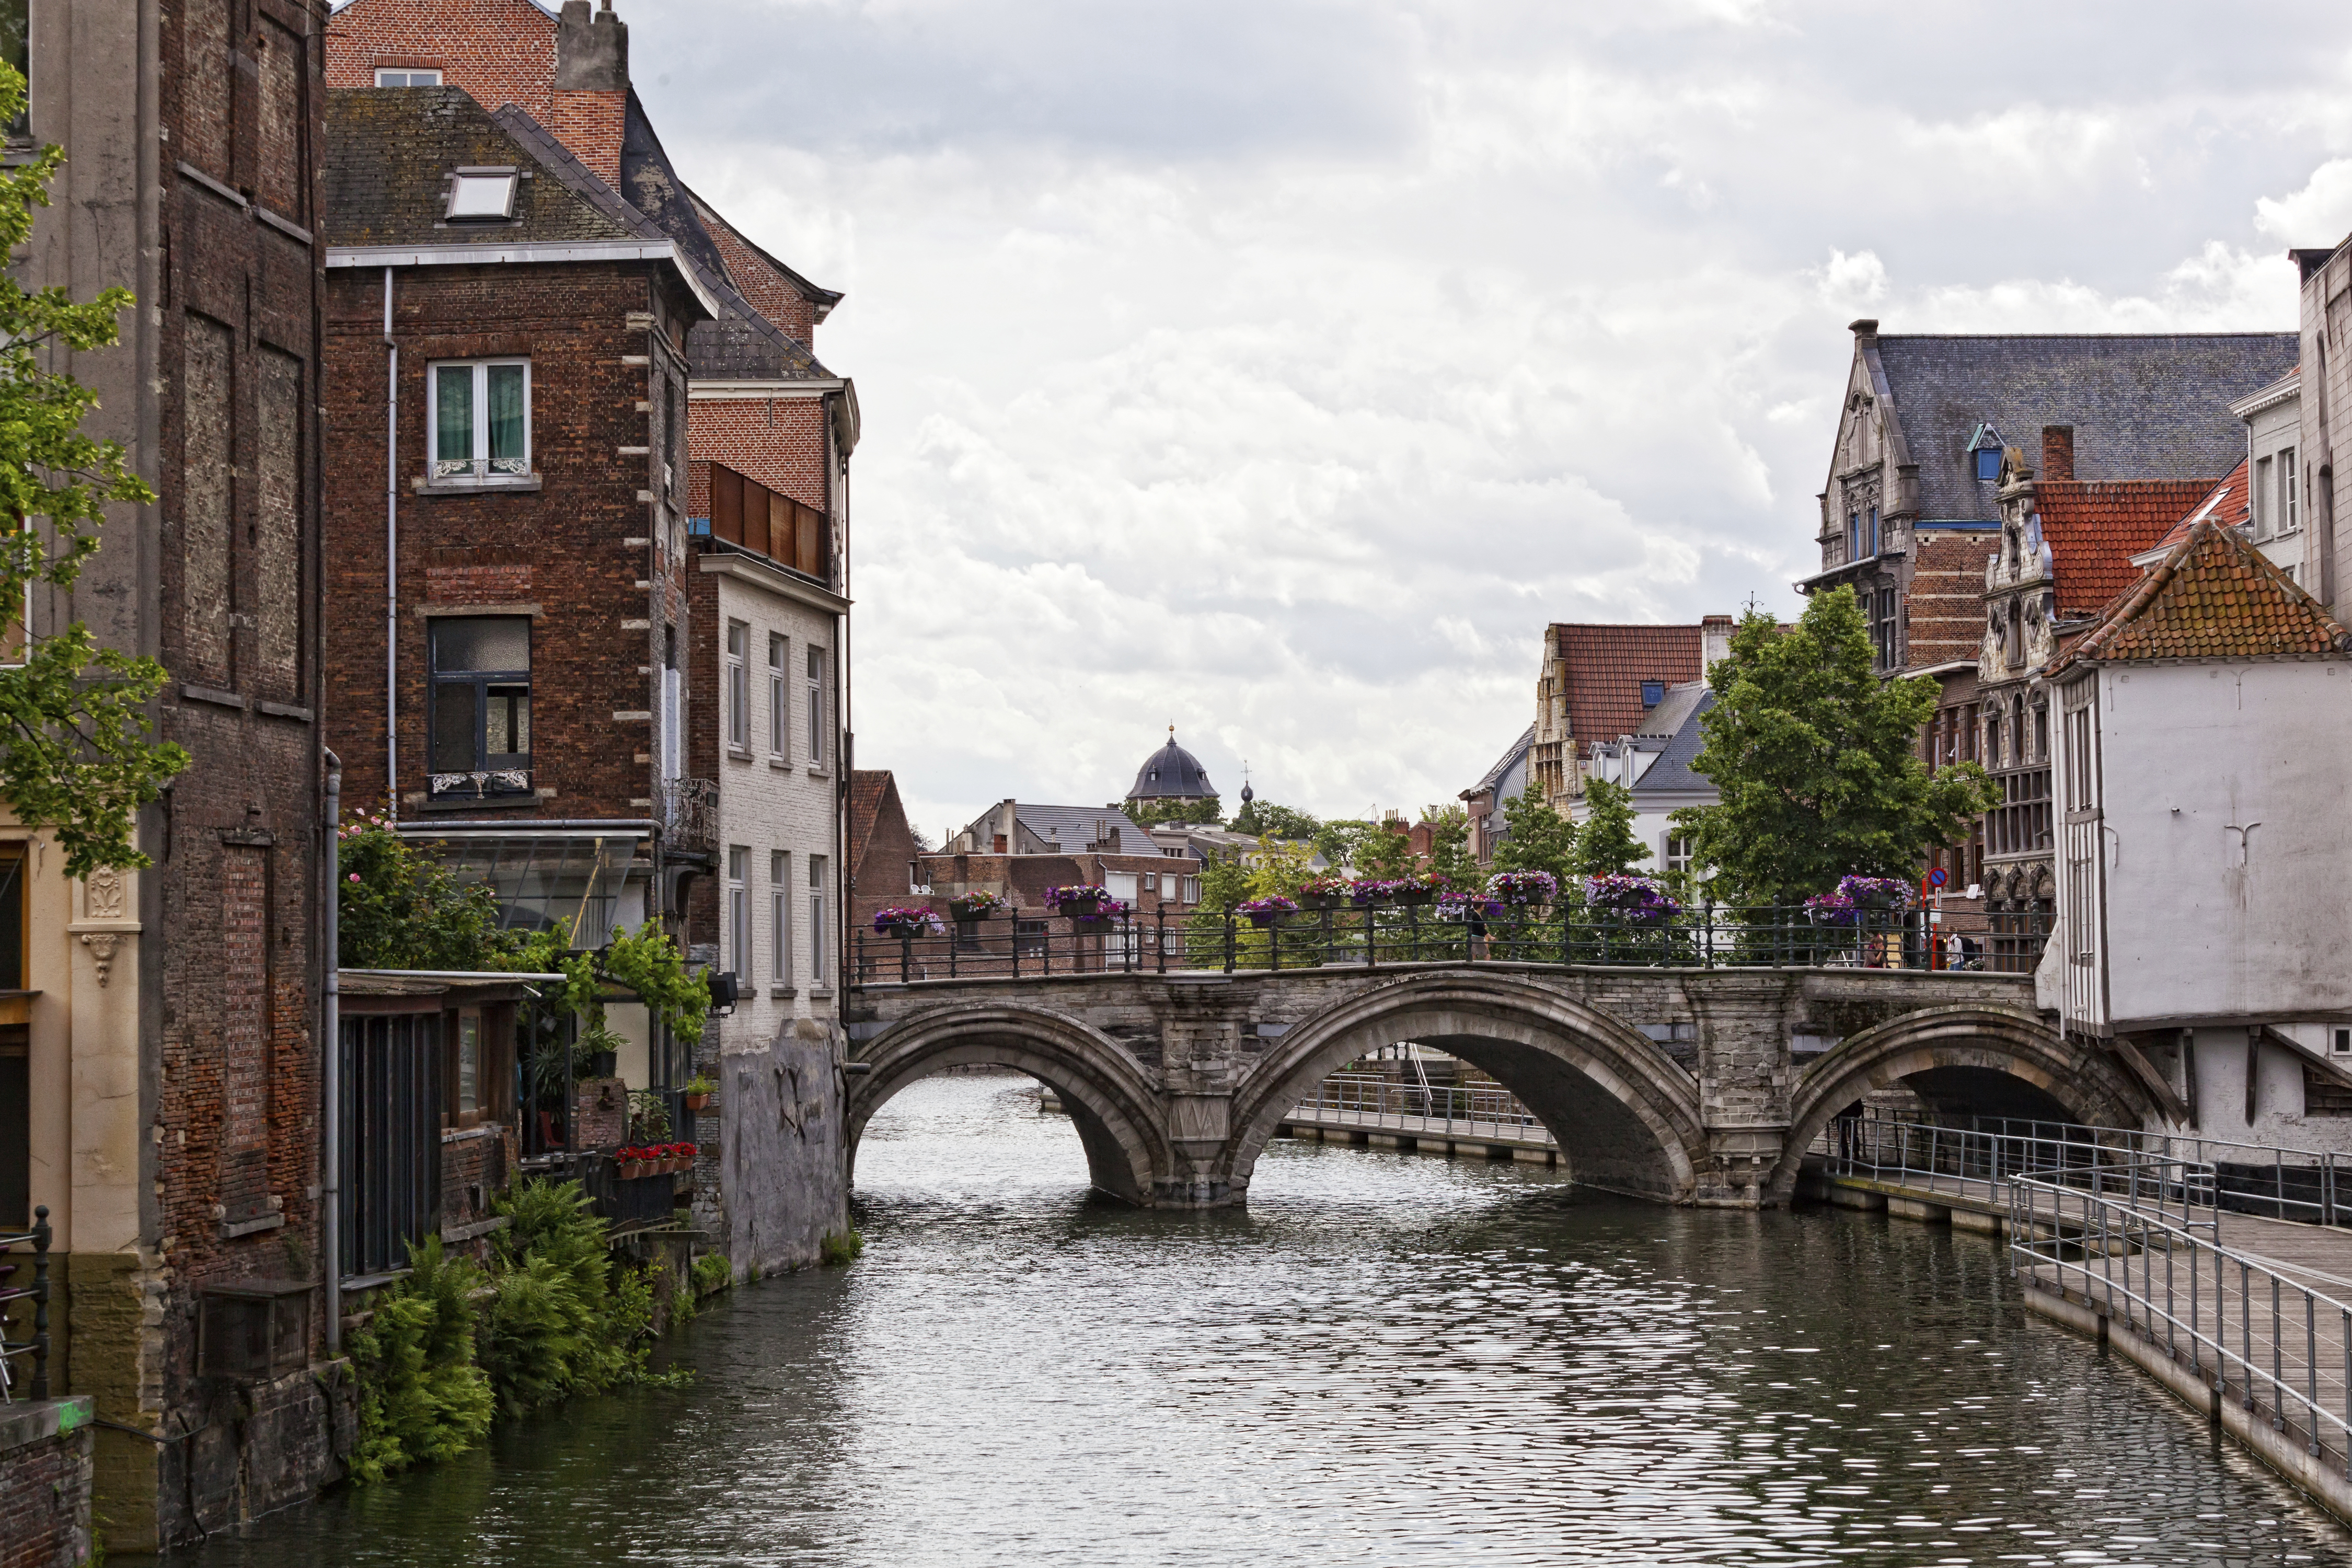 Belgian city of Mechelen (Malines)